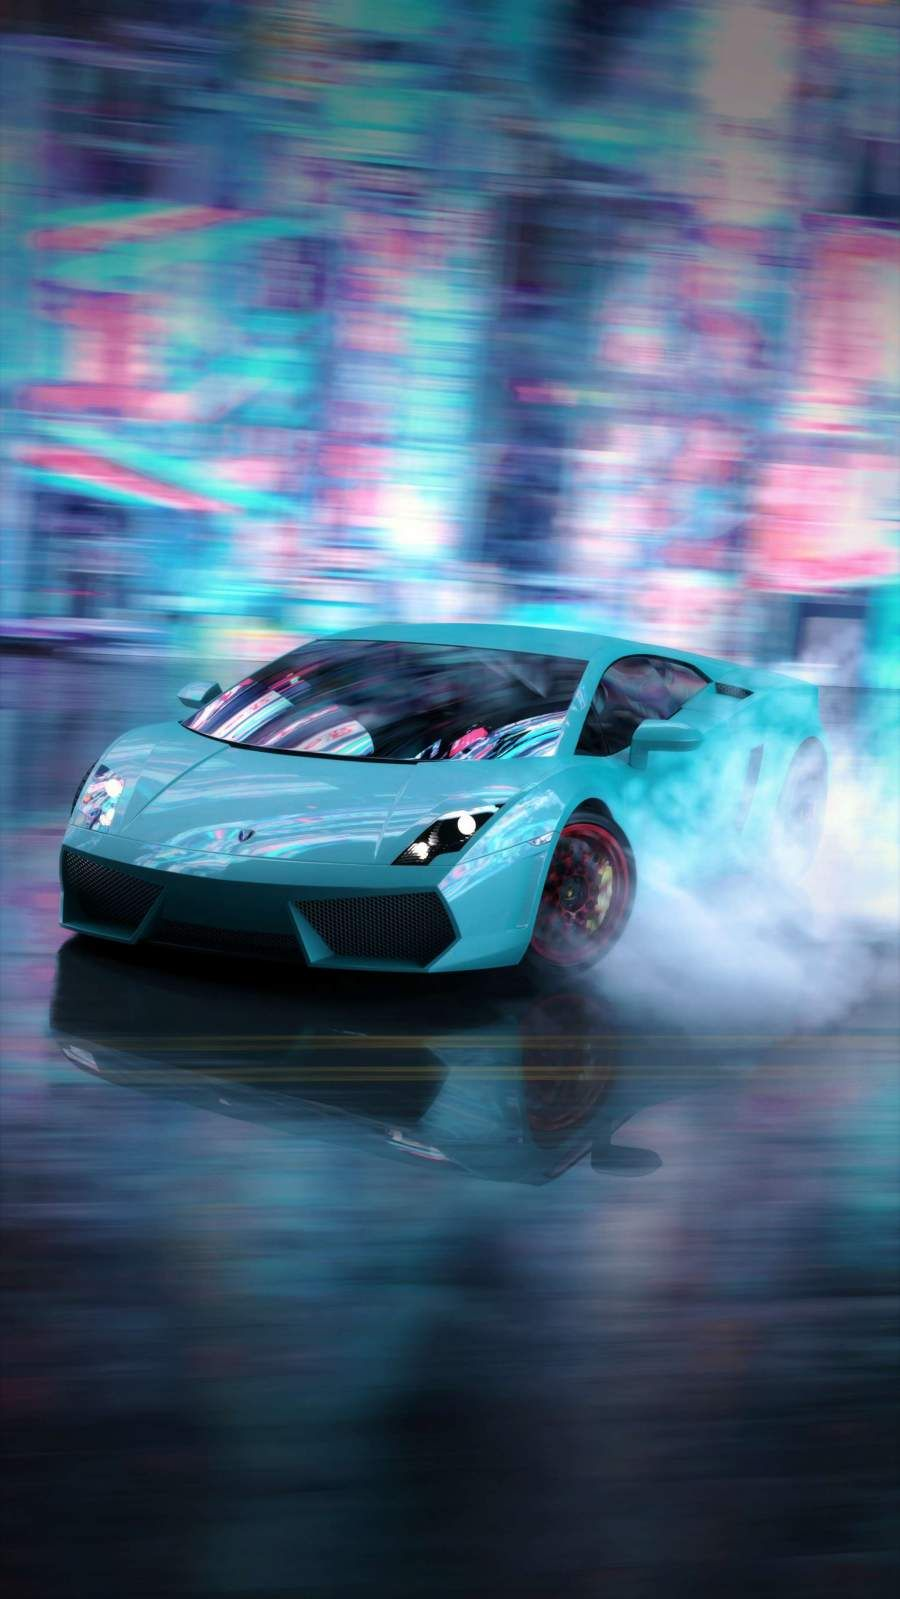 Masked Guy Iphone Wallpaper Car Iphone Wallpaper Bmw Wallpapers Lamborghini Wallpaper Iphone